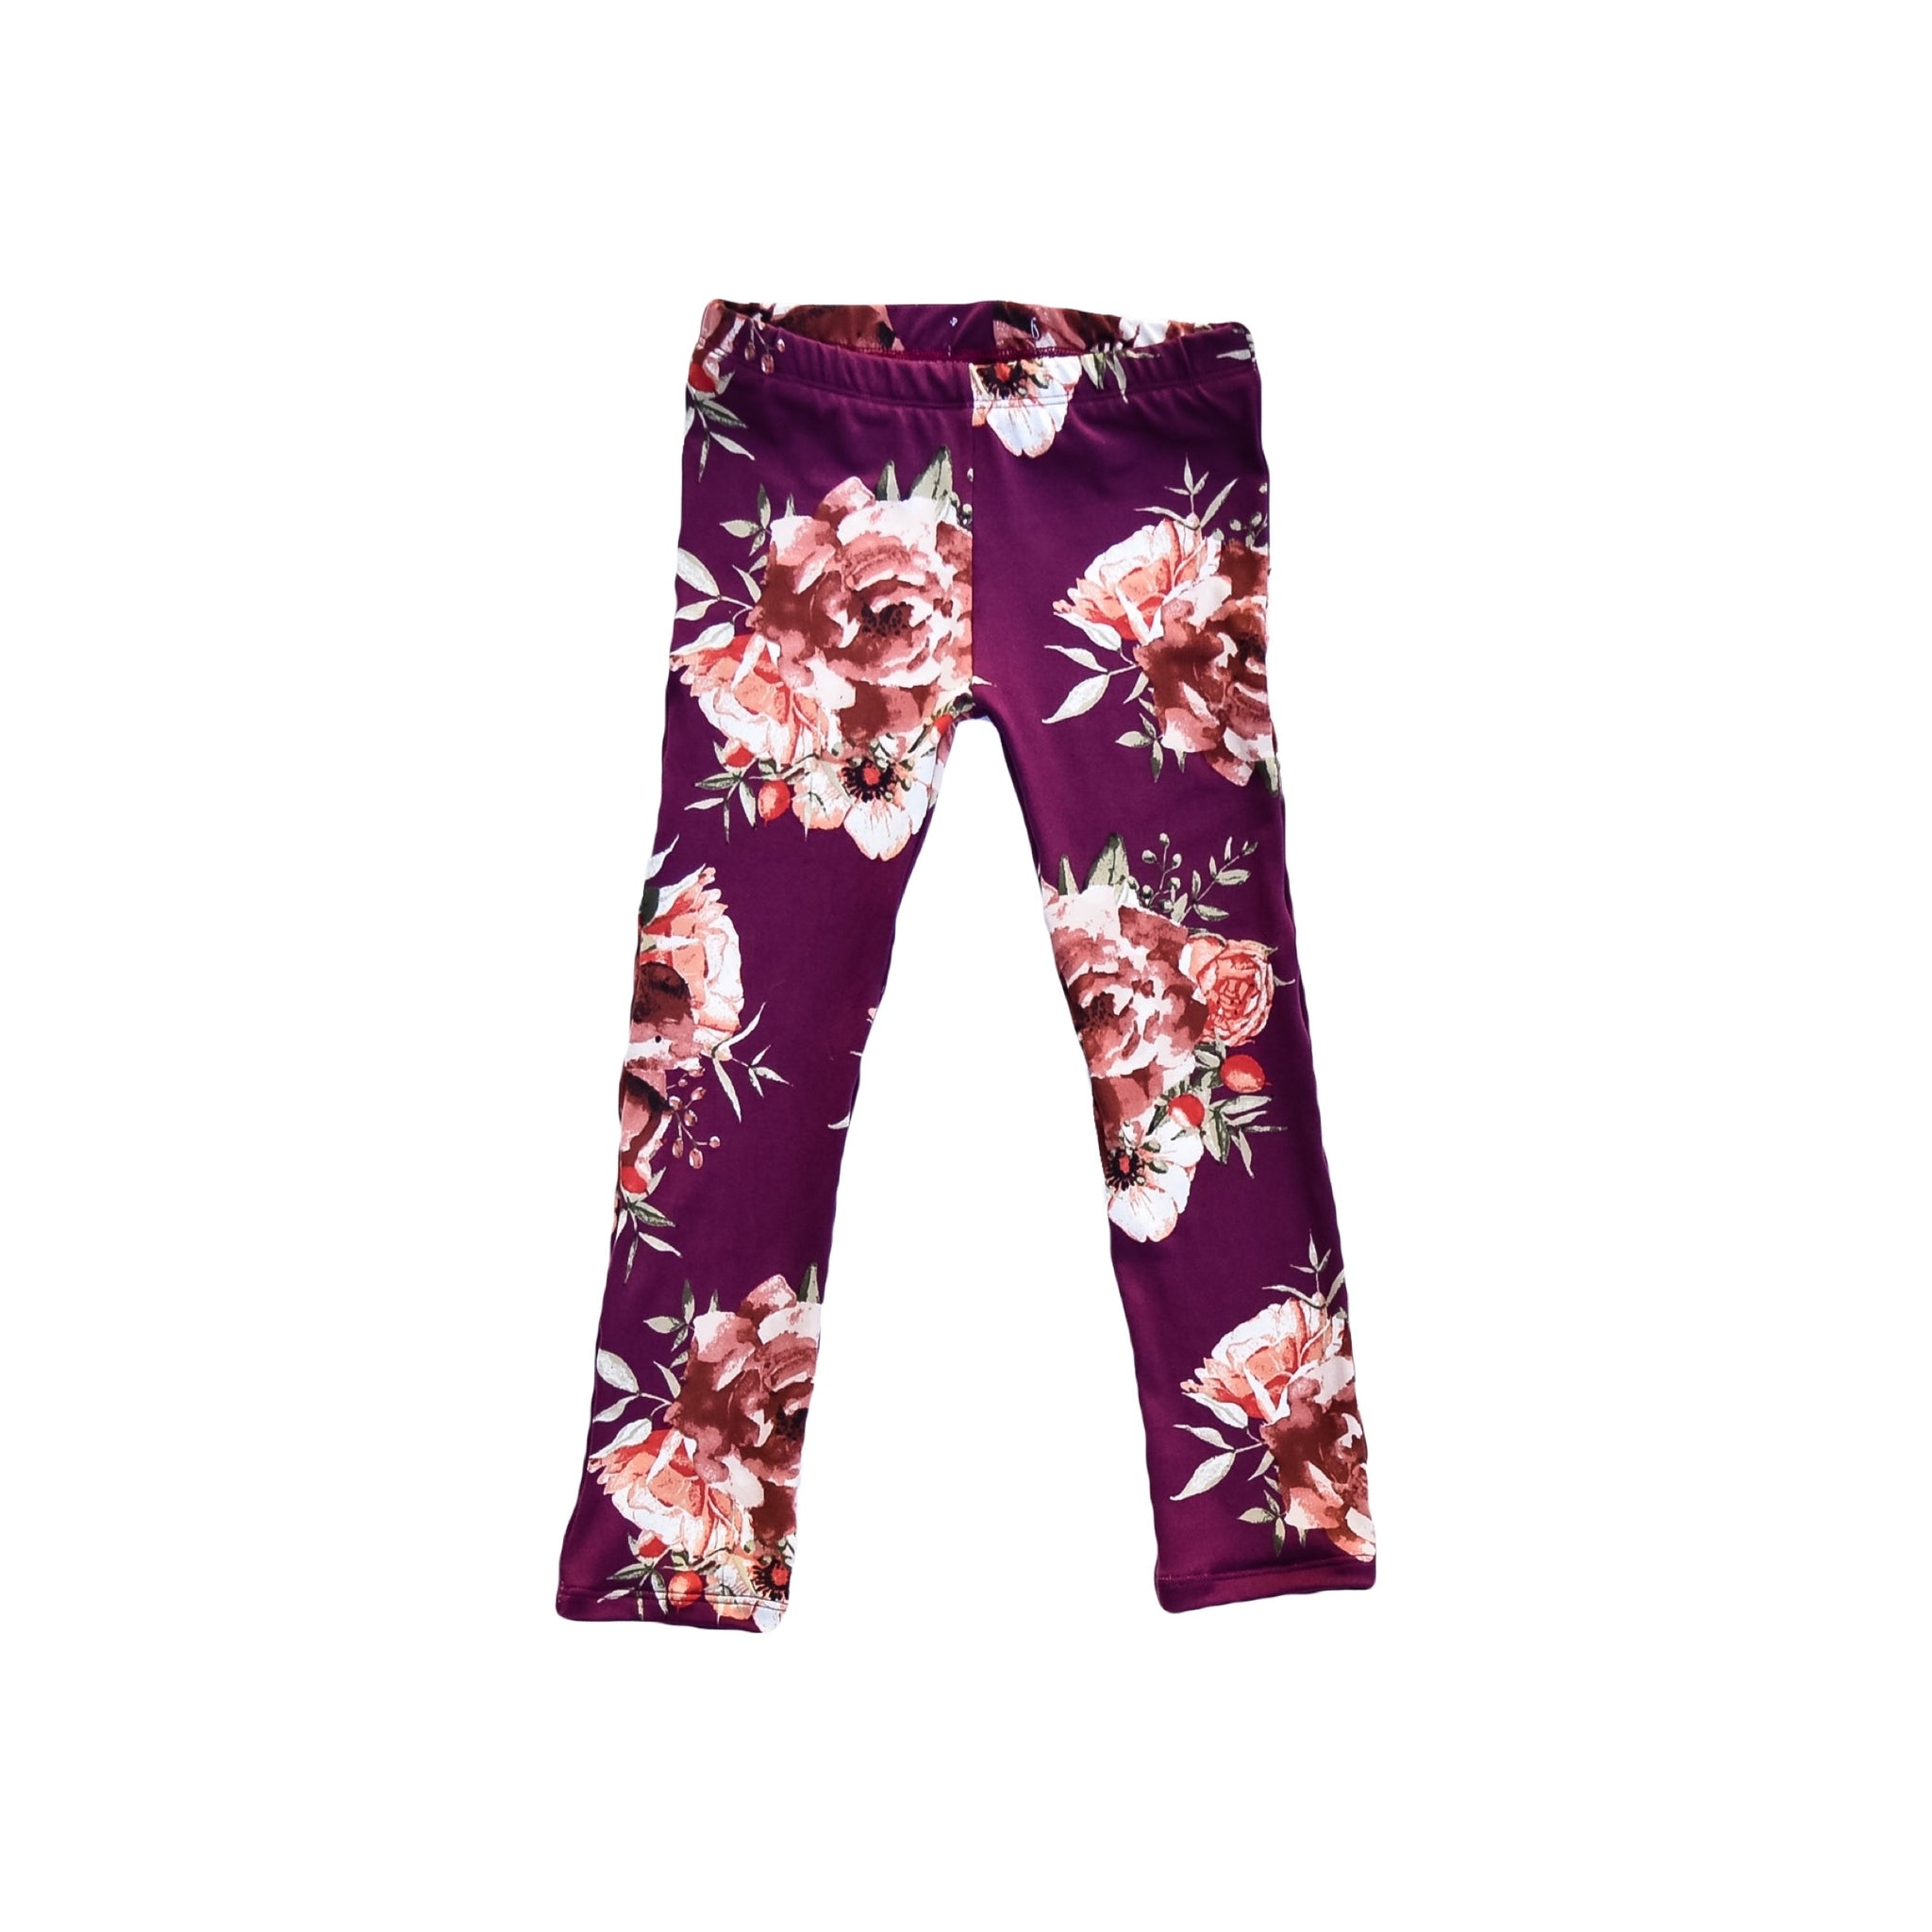 Leggings - Plum Floral [LIMITED EDITION]